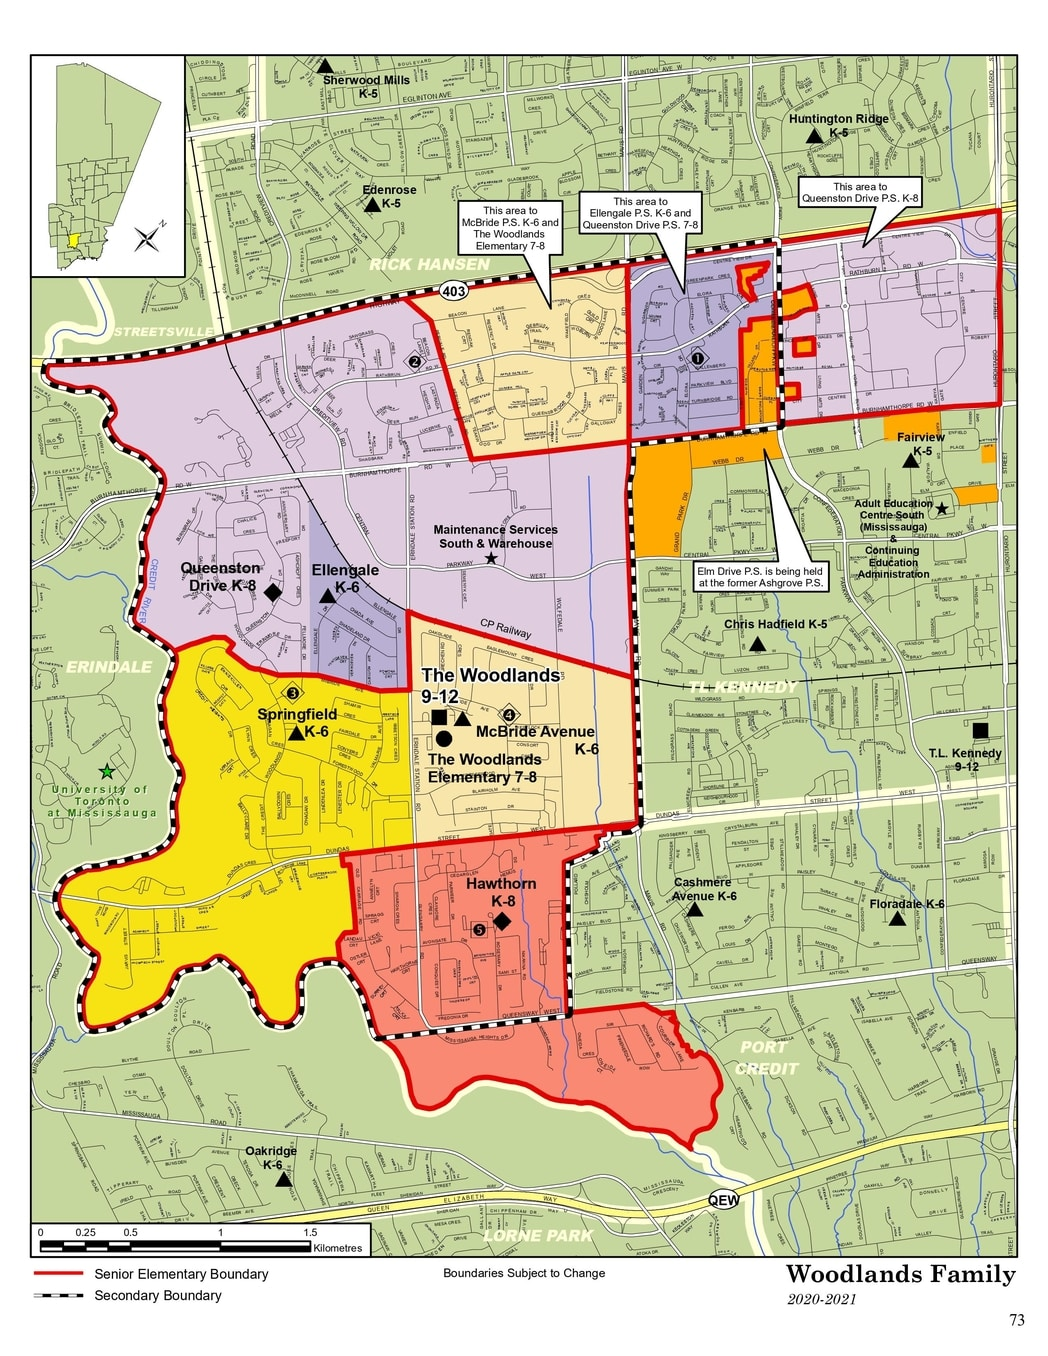 the woodlands school boundary map